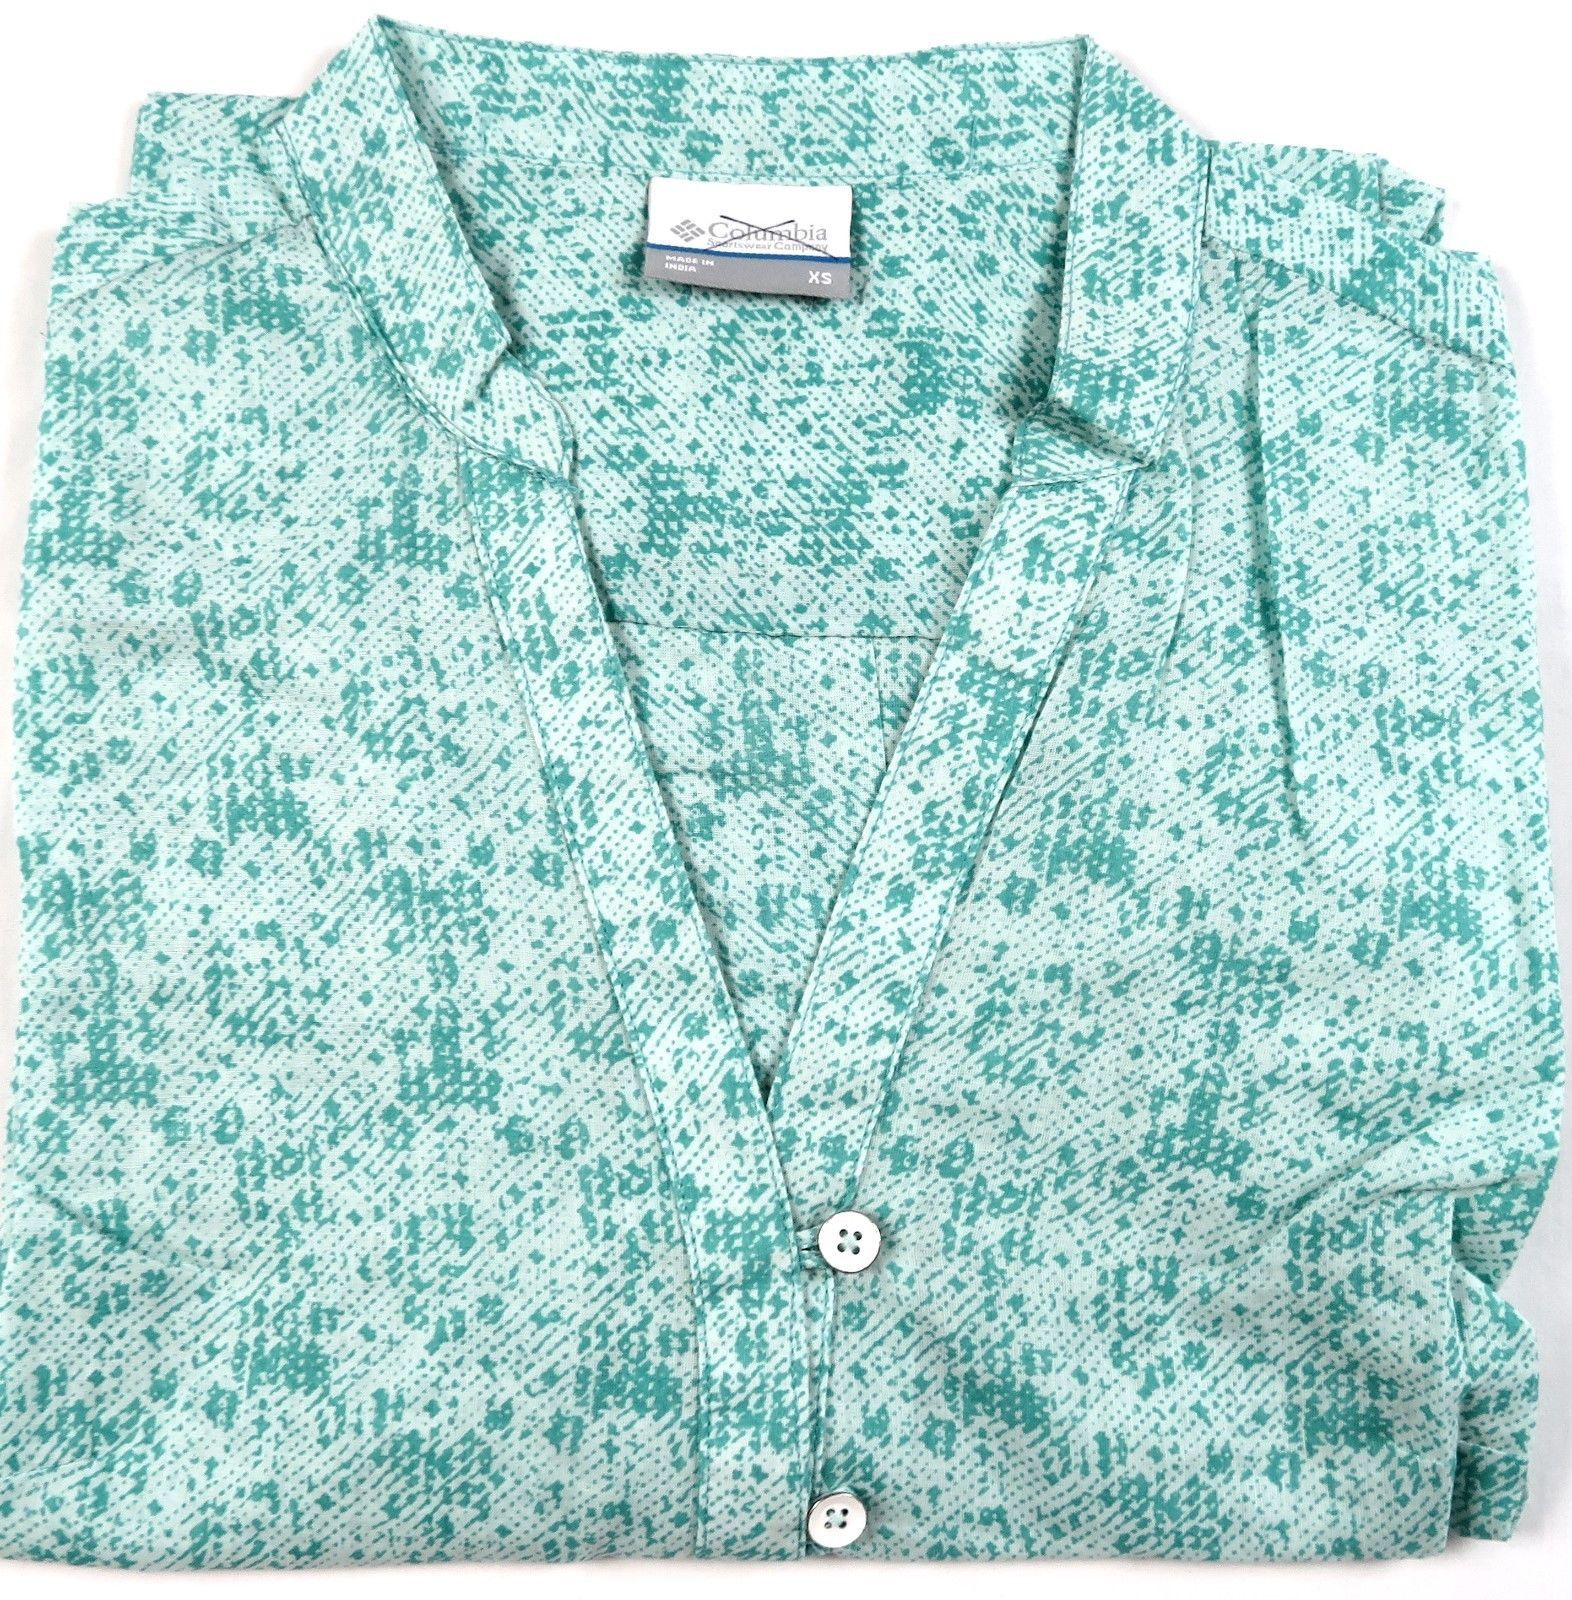 X-Small Columbia Women's Shirt 3/4 Sleeve V-Neck Pullover Blouse Green